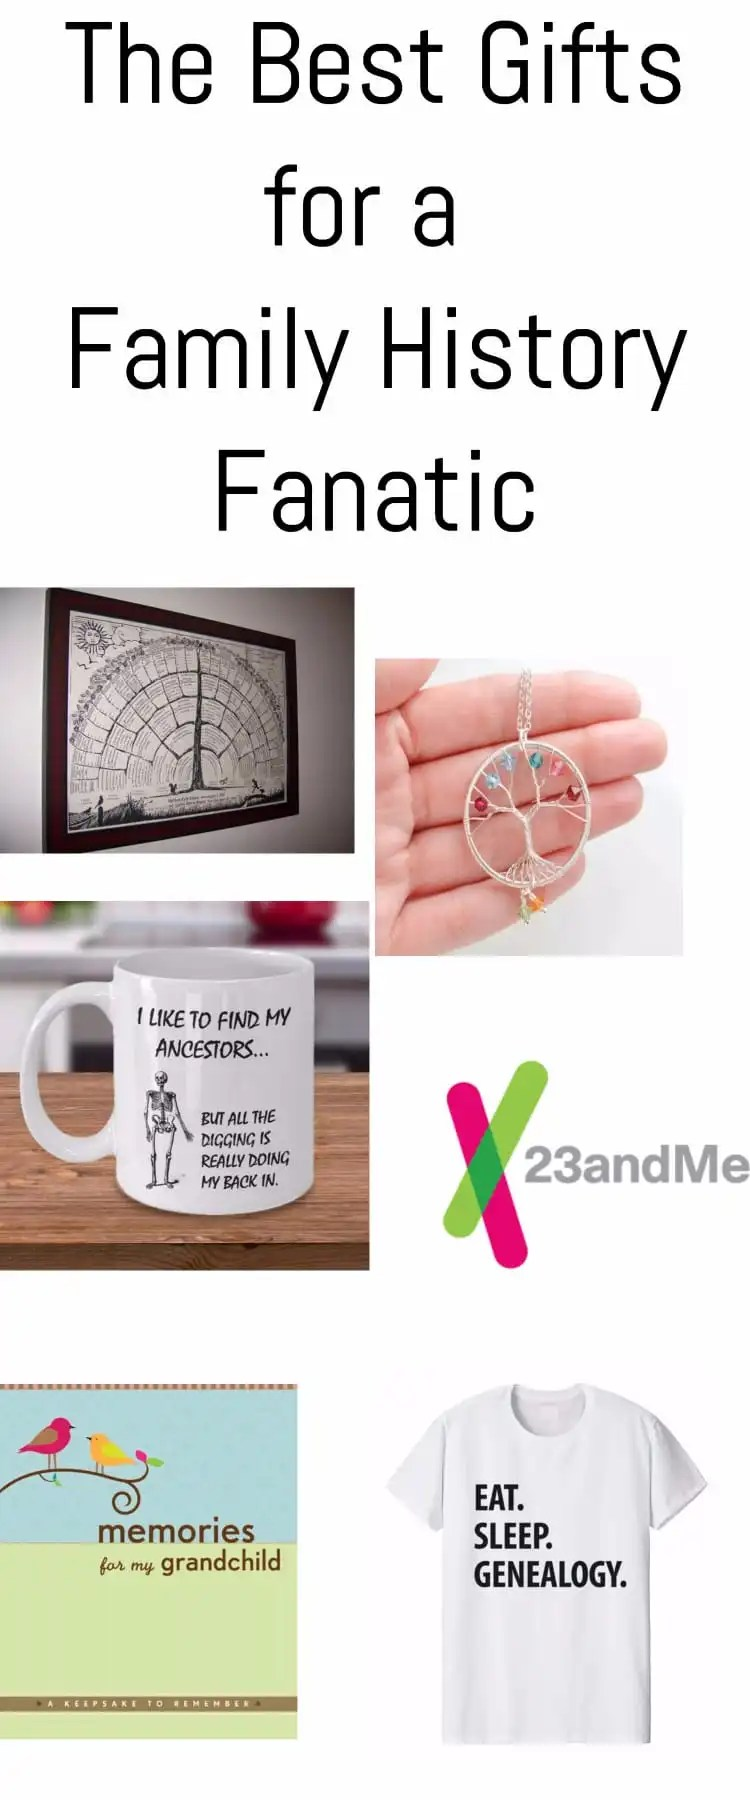 Family history gifts / family history gift ideas / genealogy / church / ancestry